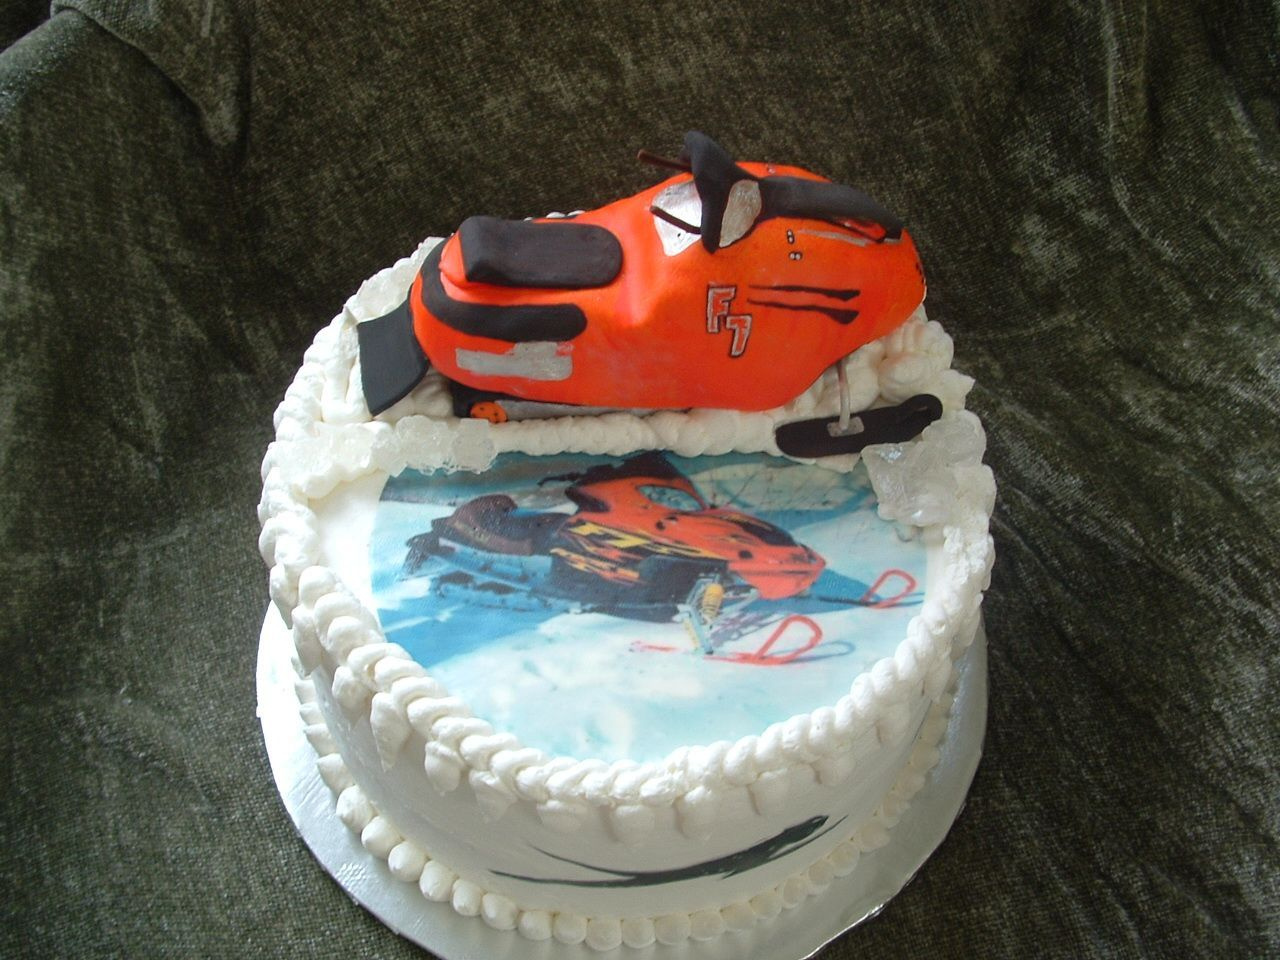 Snowmobile Birthday Cake Made for a 17th birthday The boy is an